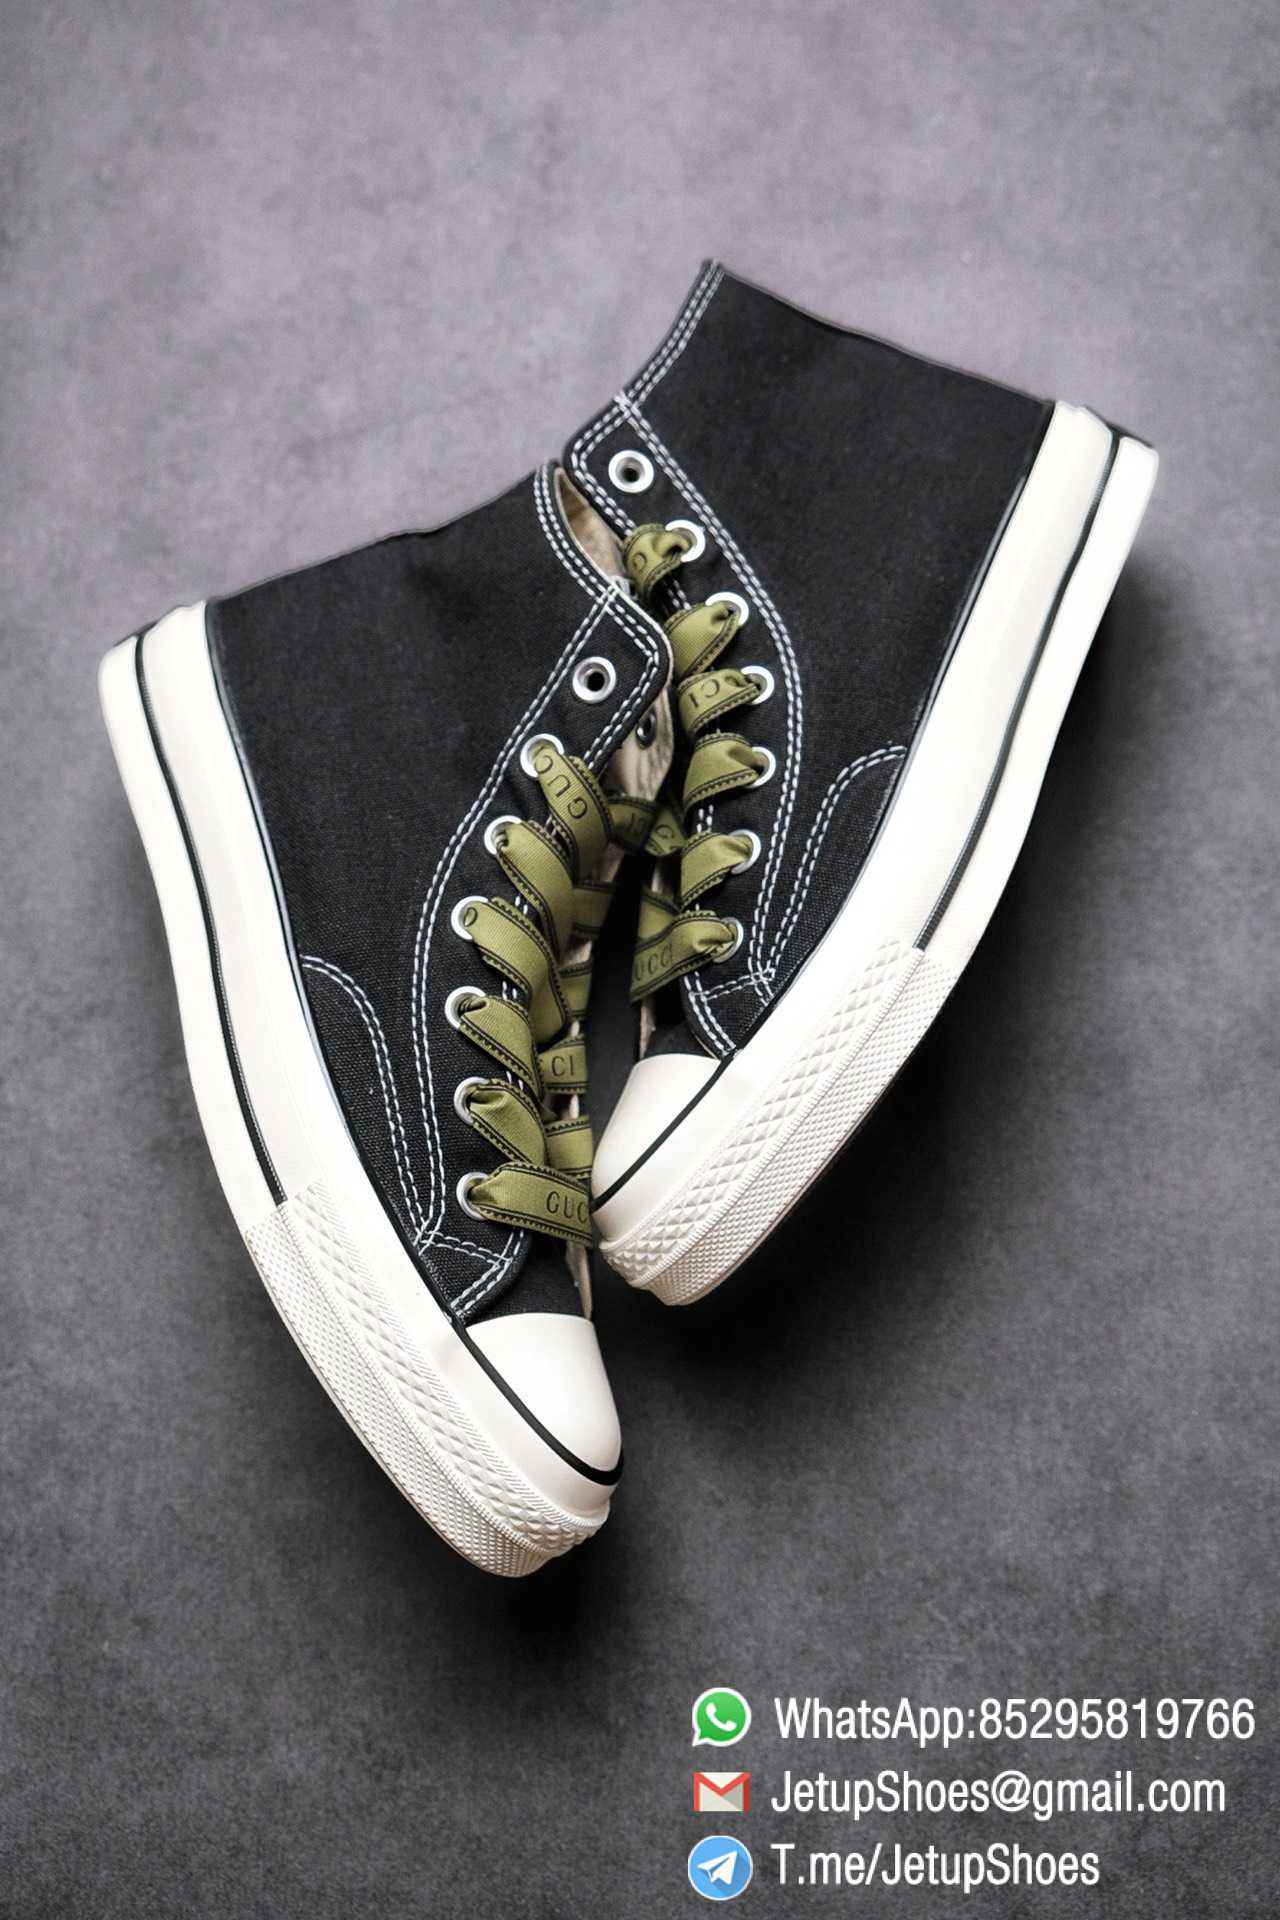 Womens Converse x Gucci Tennis 1970S High Top Sneaker Vintage Inspired Green Shoelace Black 2021 Spring 08